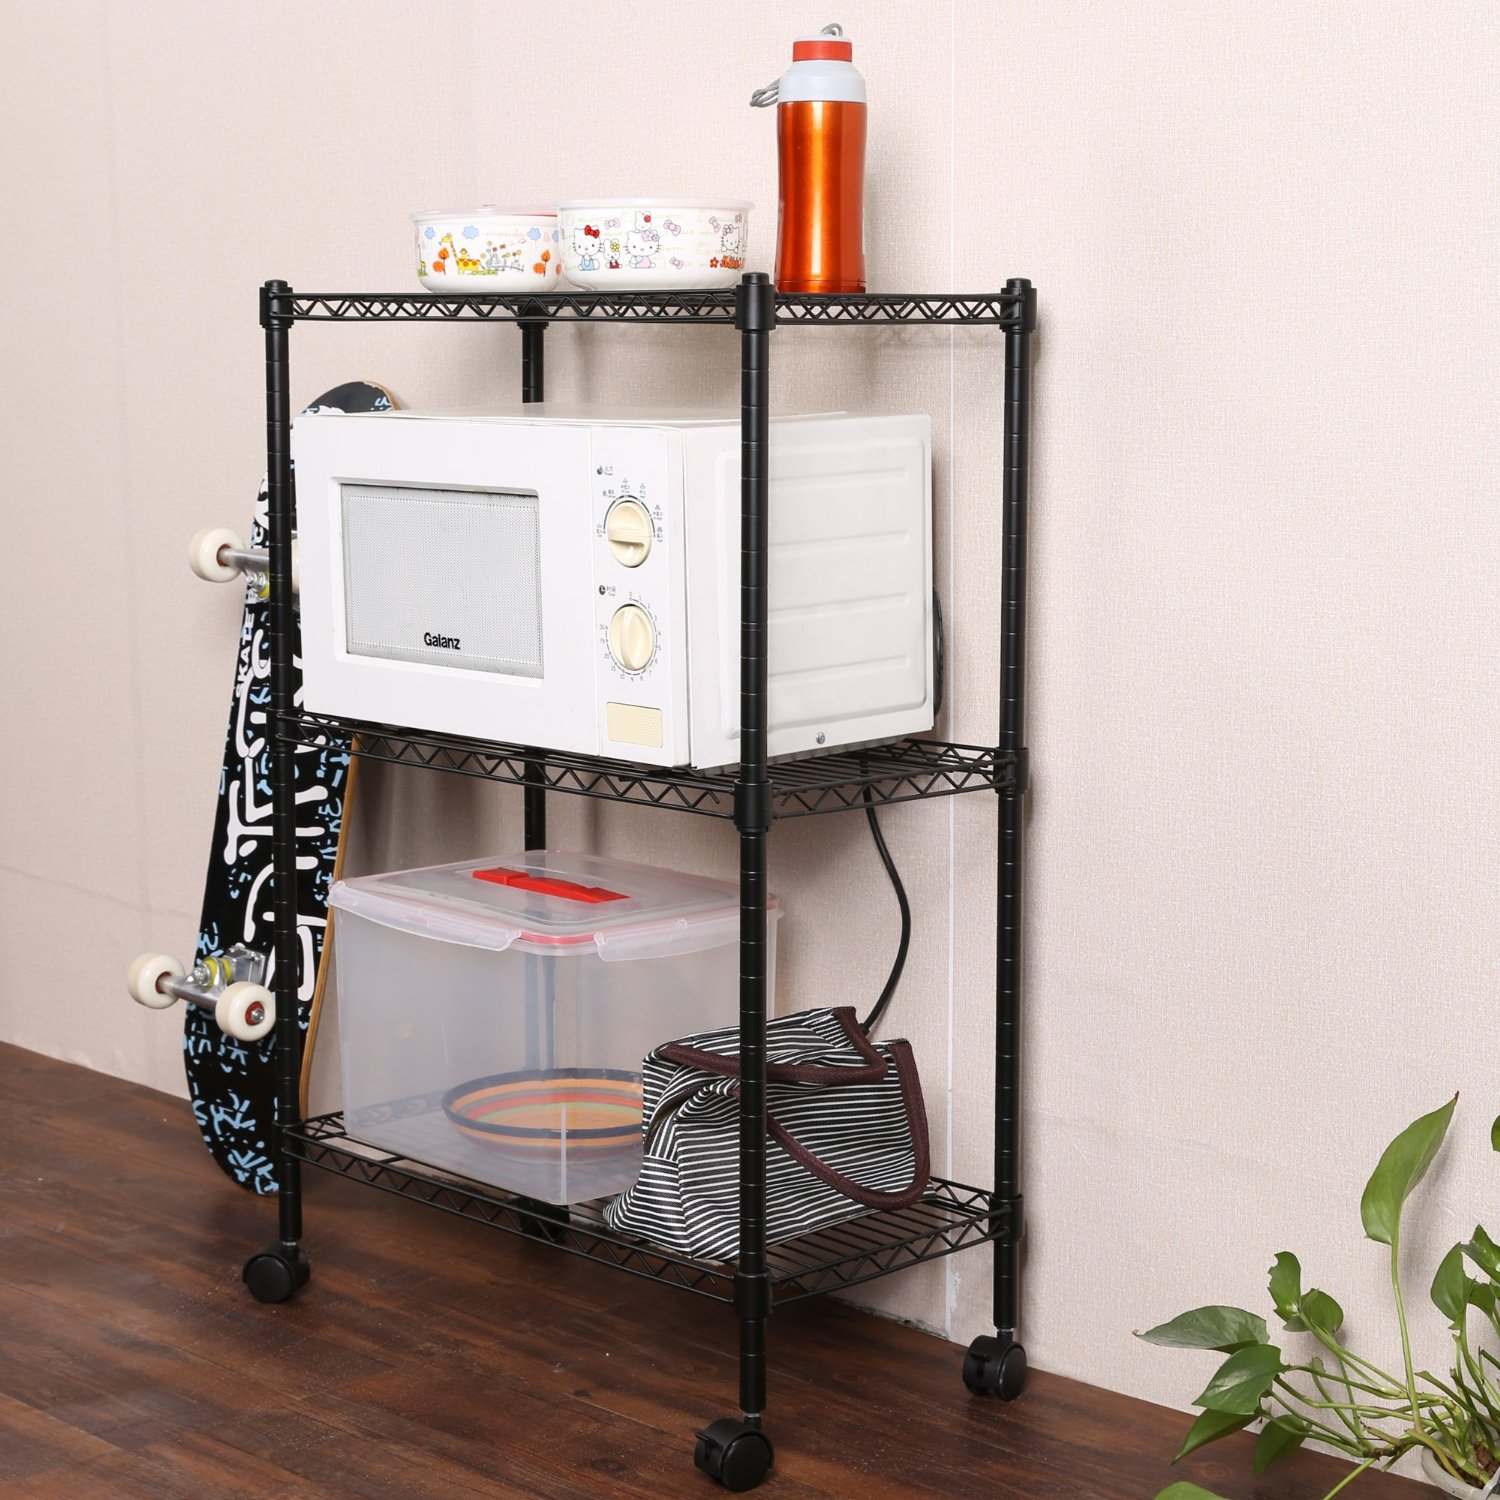 homdox 3tire heavy duty shelves storage organizer wire shelving unit rolling cart rack with